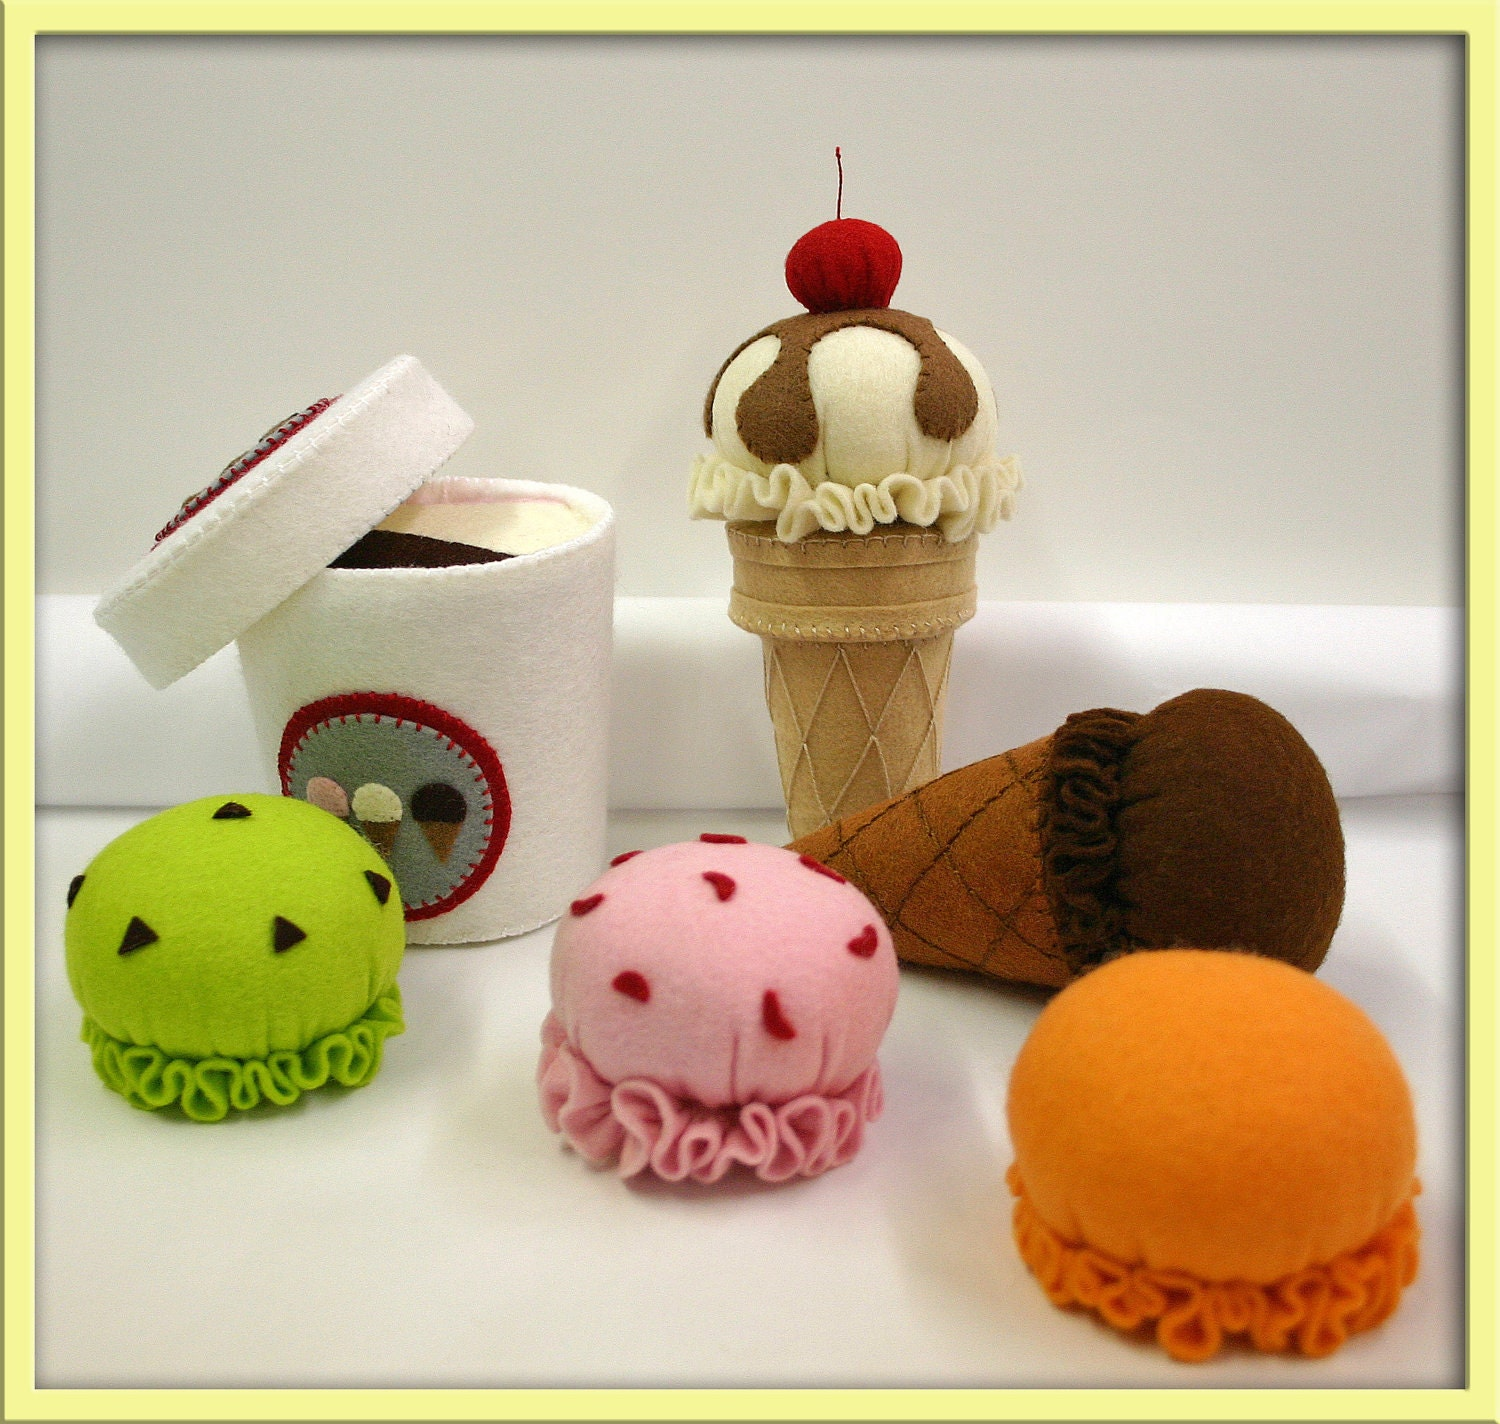 Wool Felt Play Food - Ice Cream Set - Waldorf Accessory for Imaginative Play